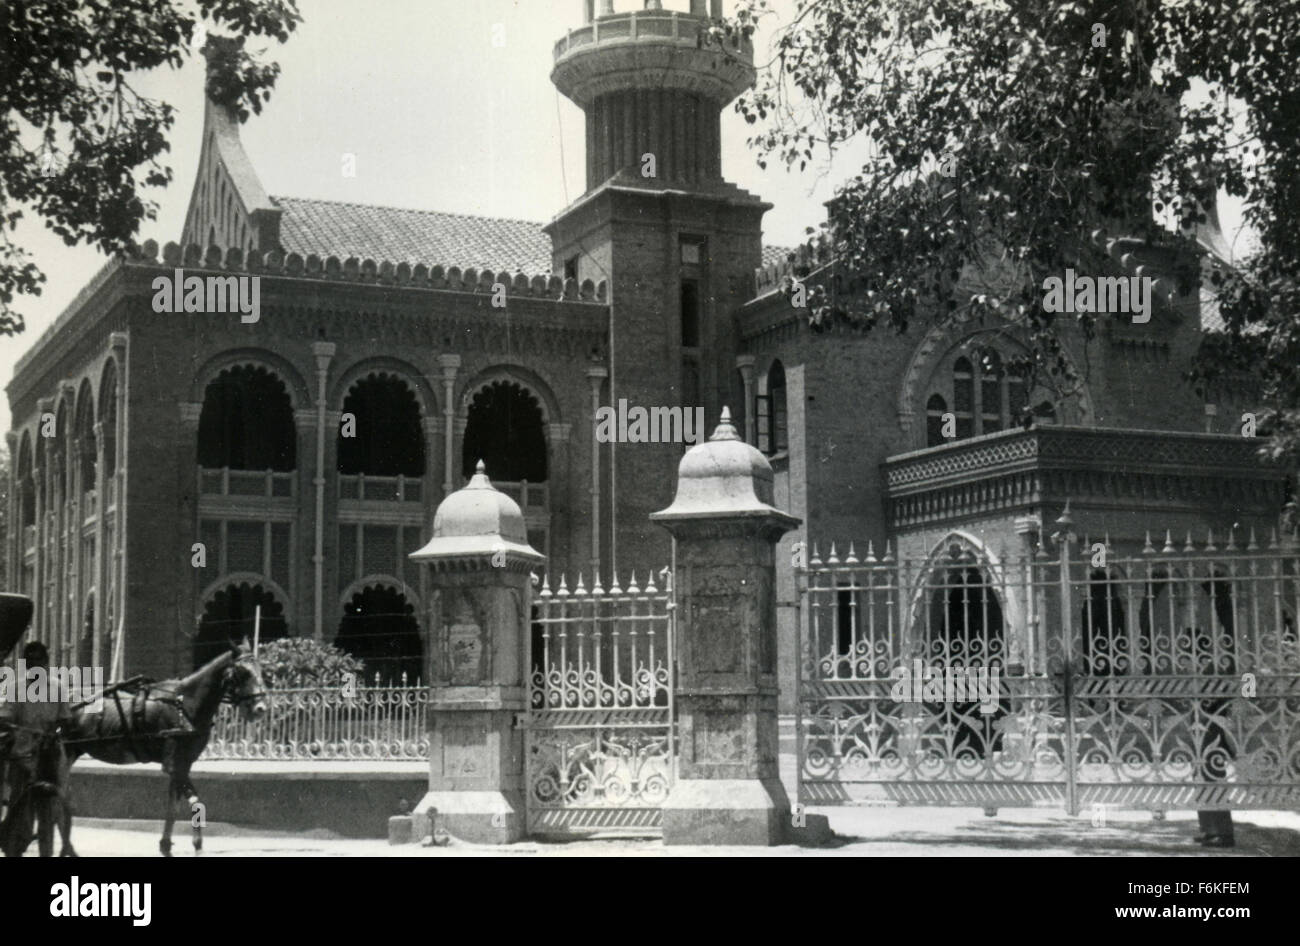 The Palace of the Supreme Court, Lahore, Pakistan - Stock Image